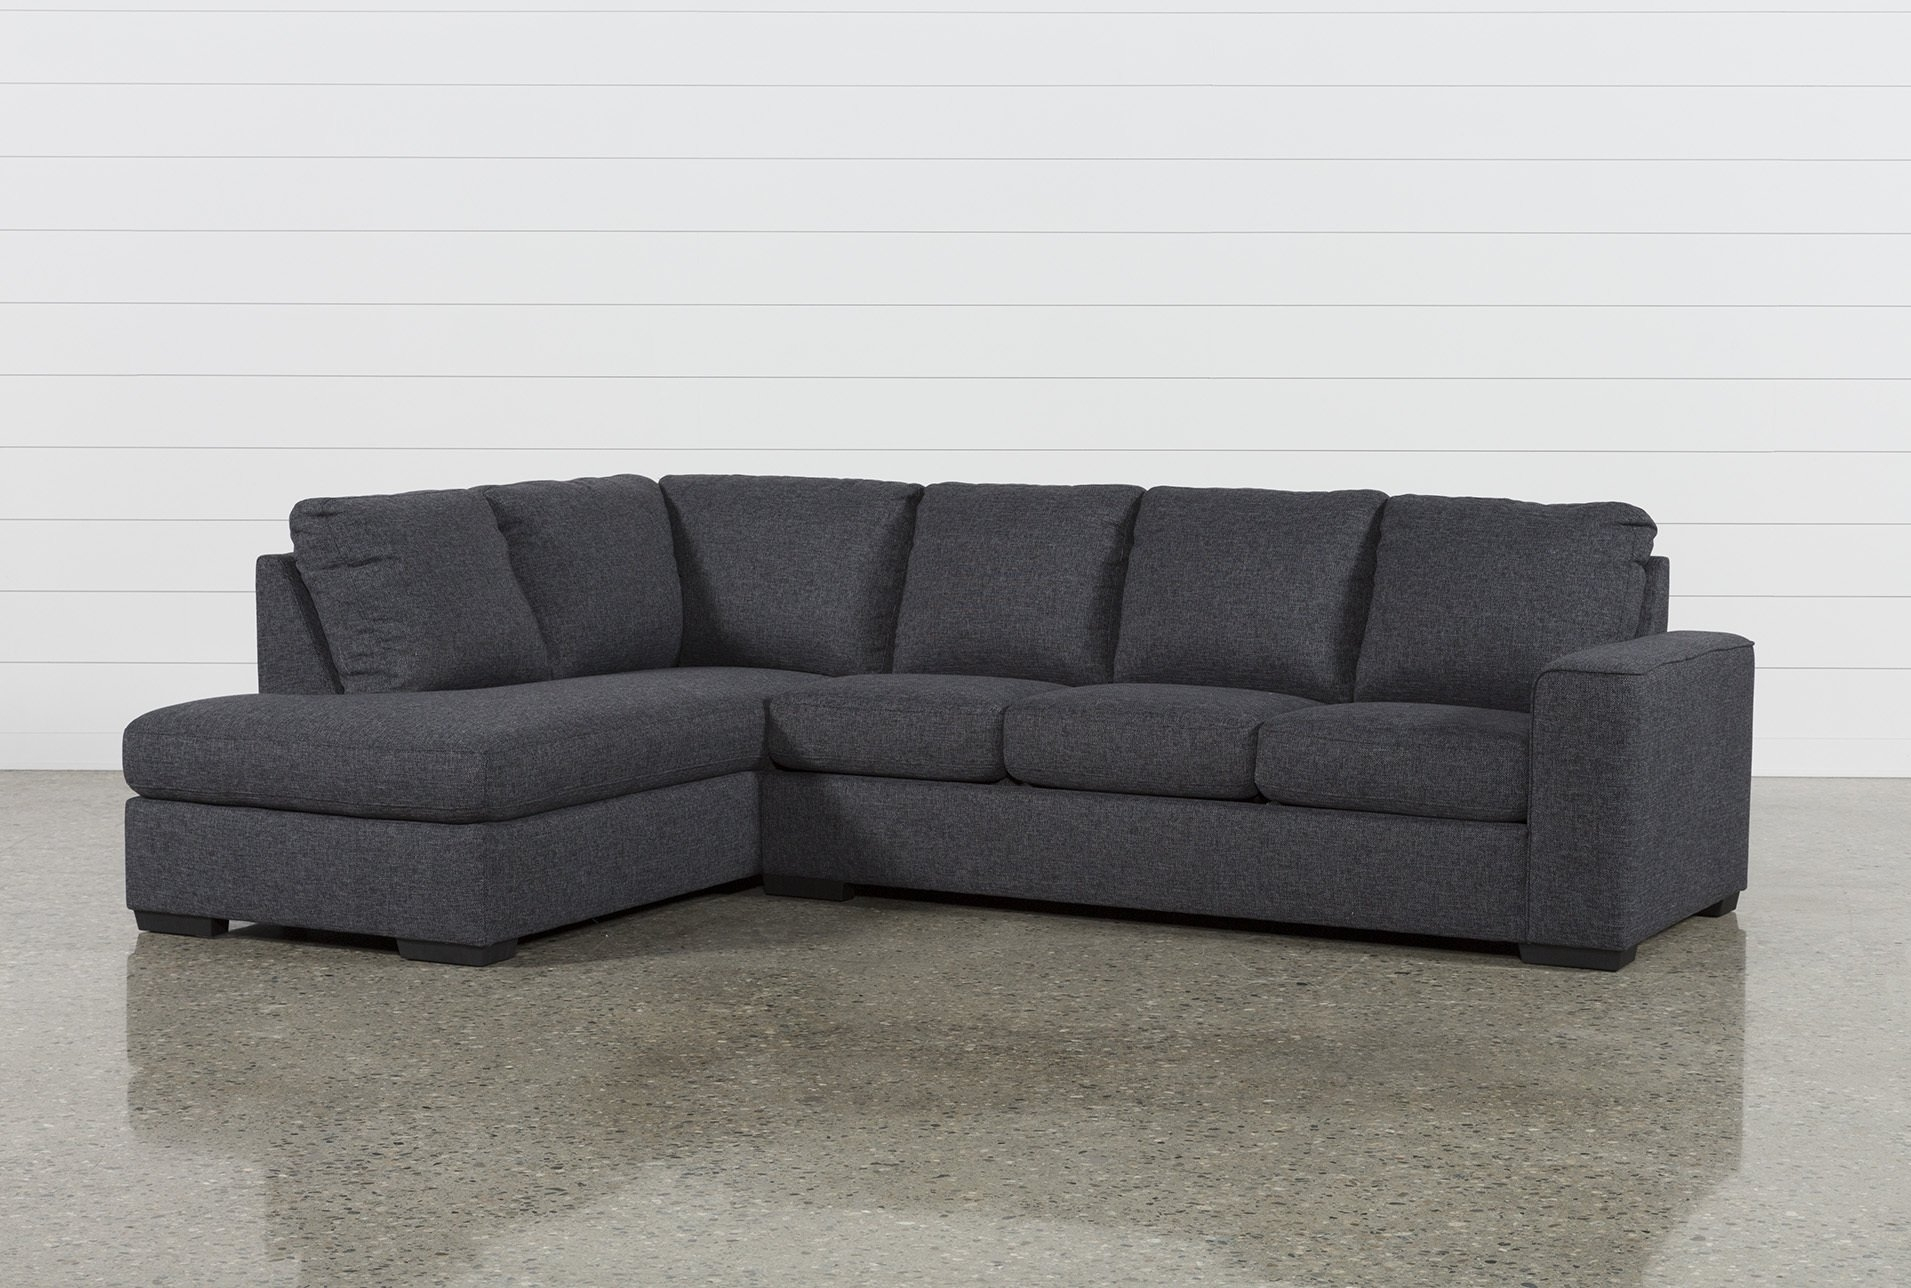 Lucy Dark Grey 2 Piece Sectional W/laf Chaise | Dark Grey And Products For Malbry Point 3 Piece Sectionals With Raf Chaise (View 9 of 30)